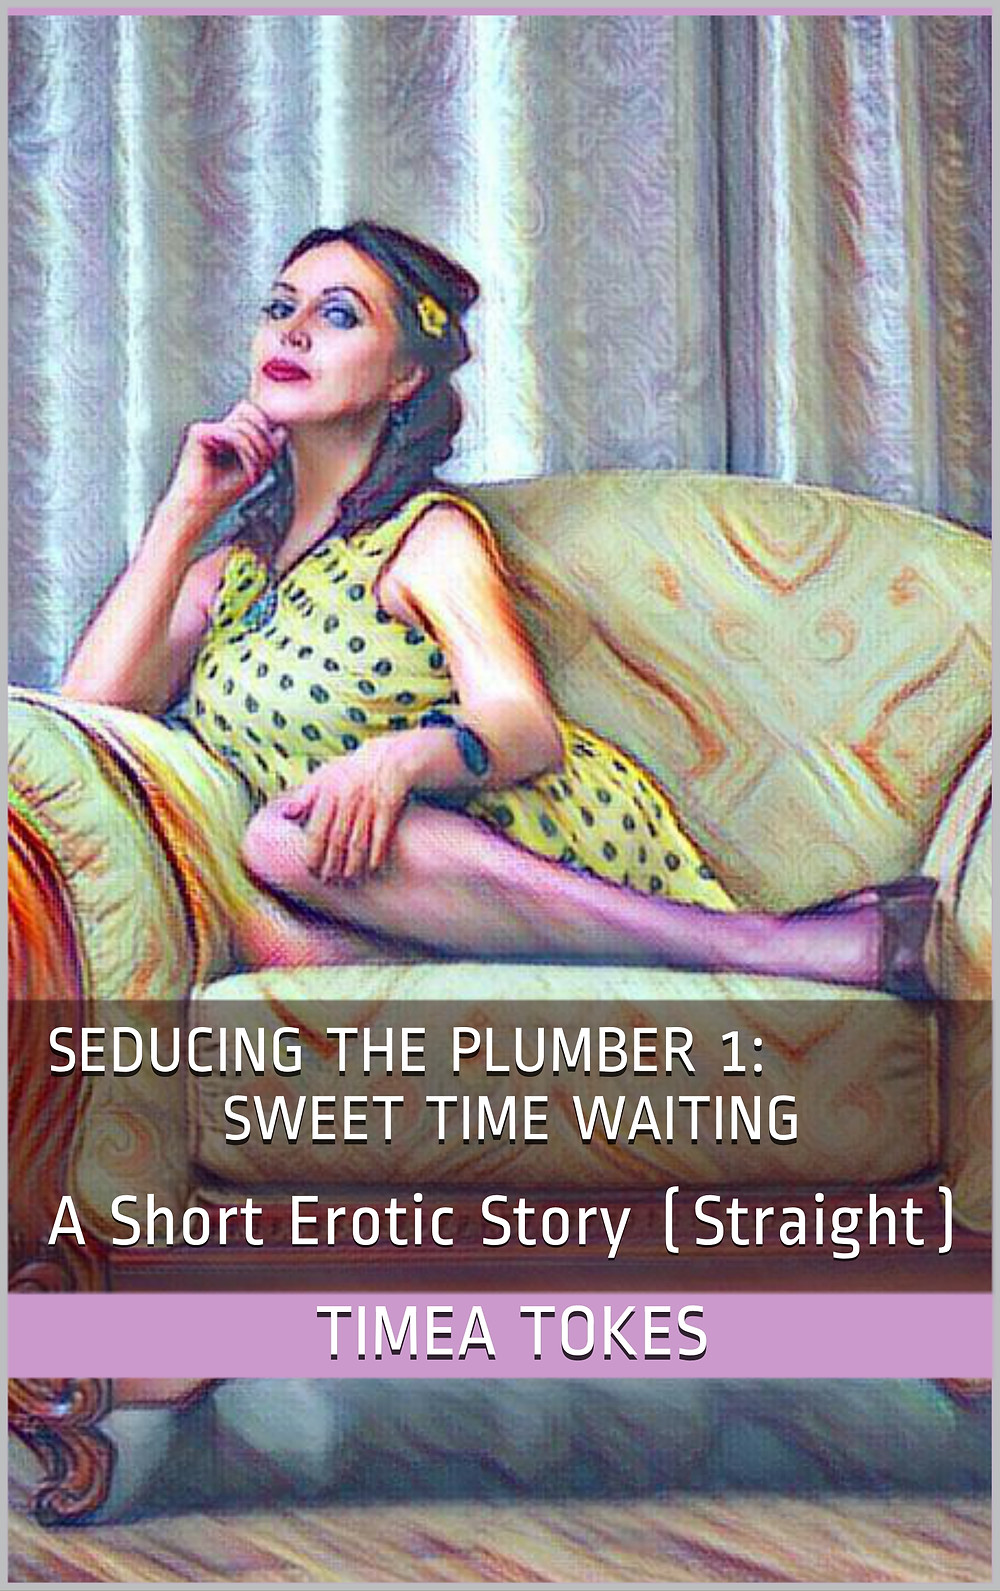 Seducing the Plumber by Timea Tokes